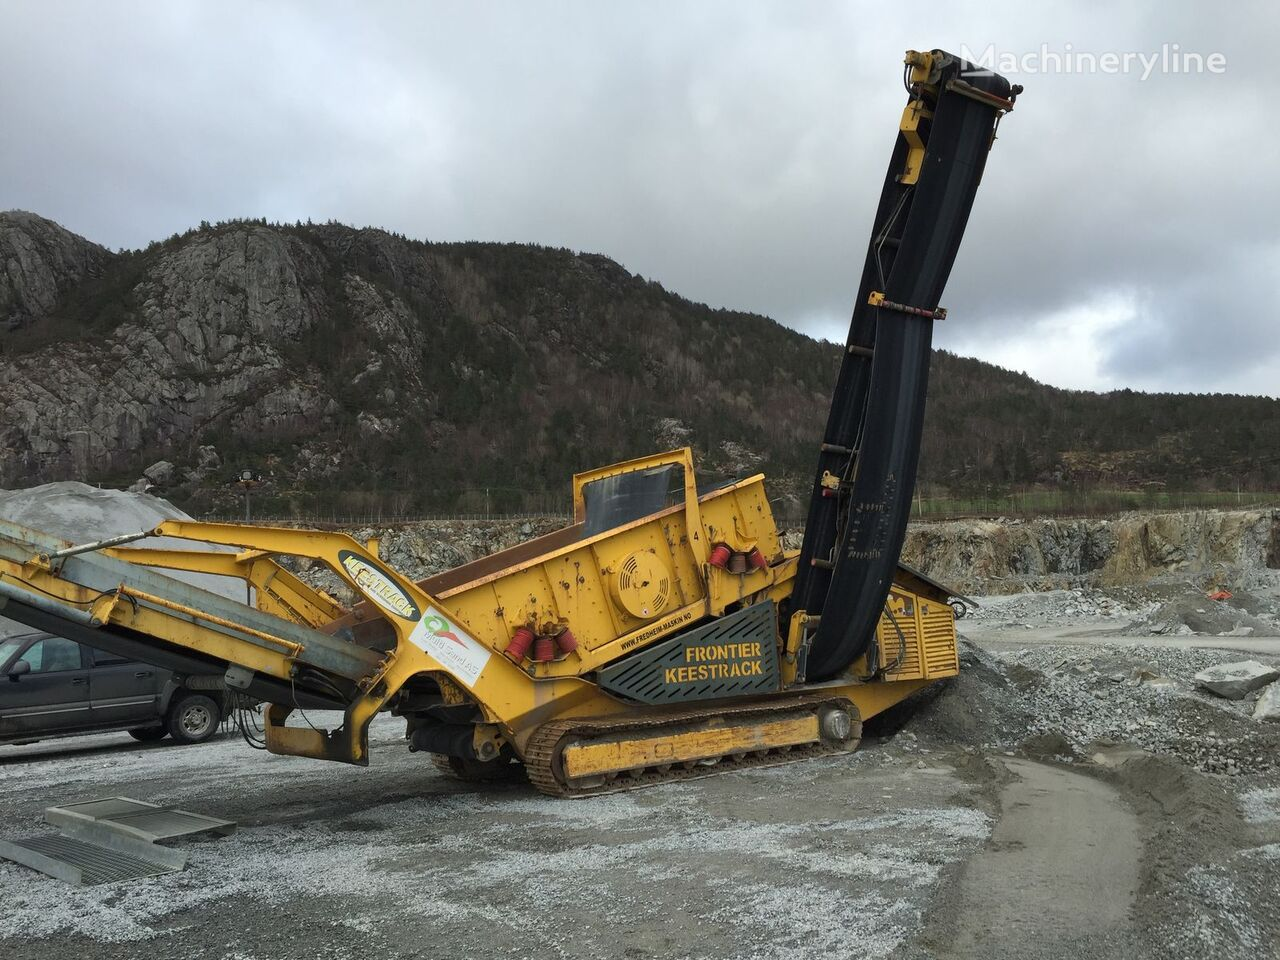 KEESTRACK Frontier crushing plant